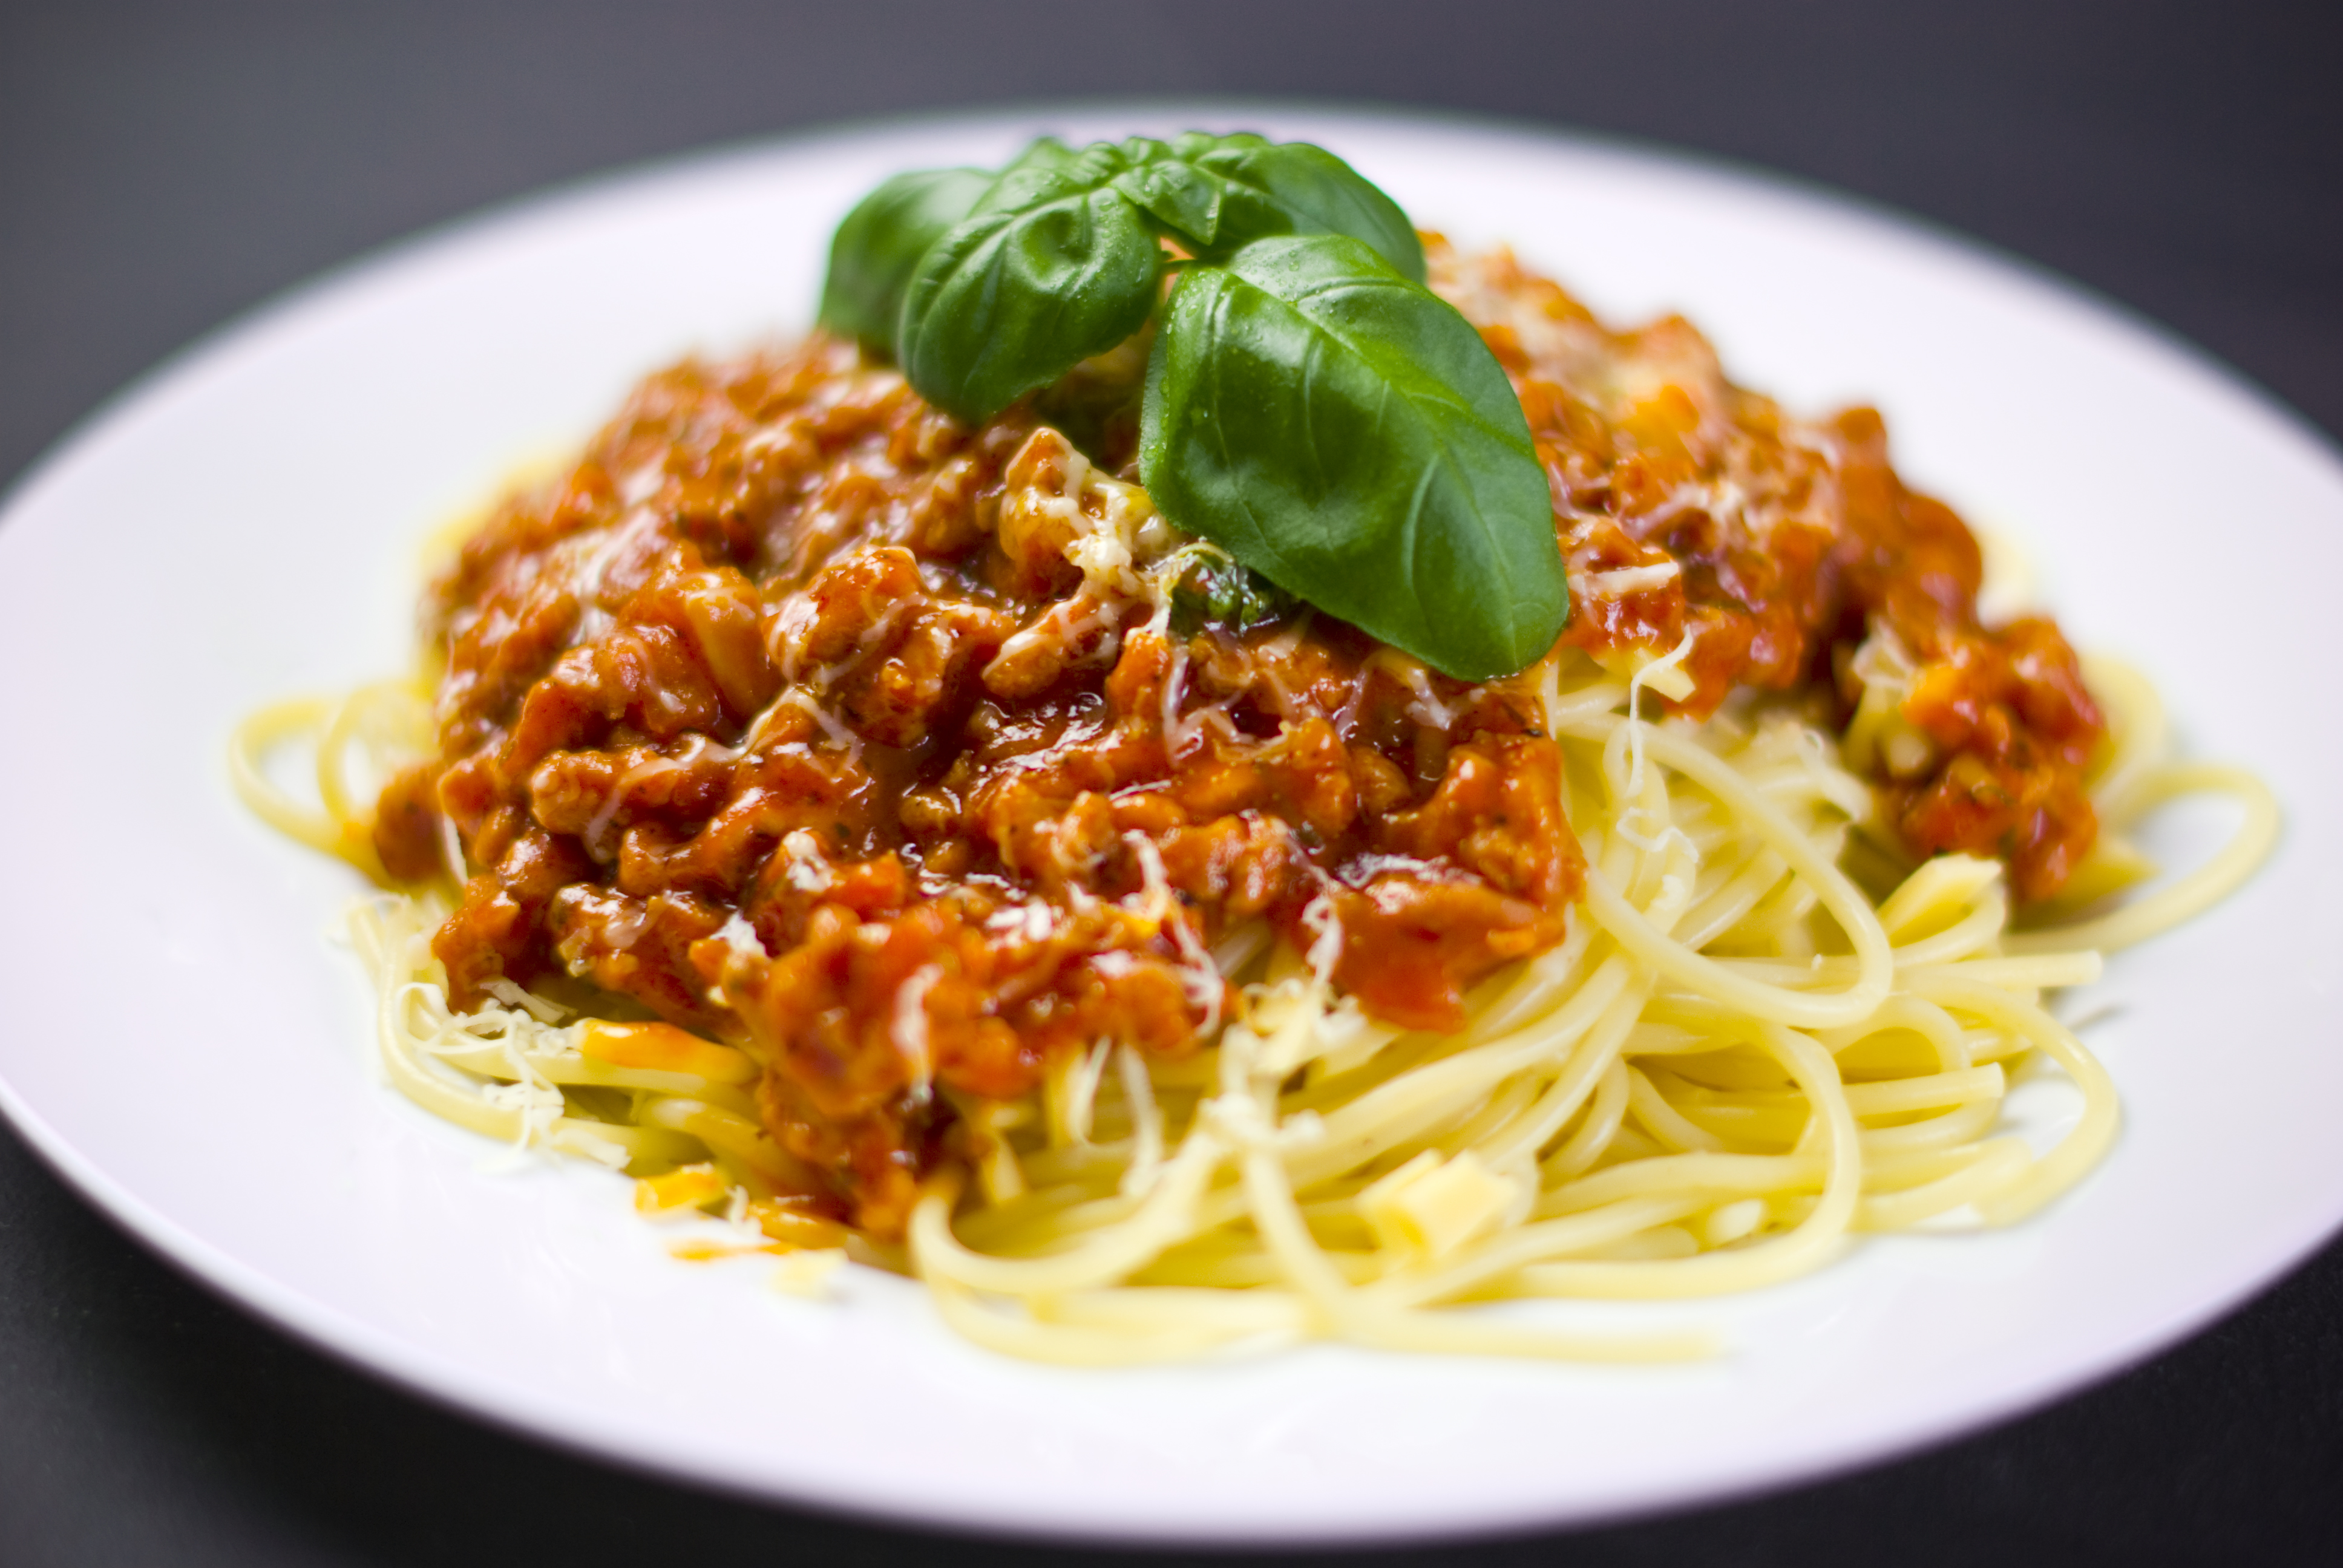 Spaghetti On White Plate Free Stock Photo